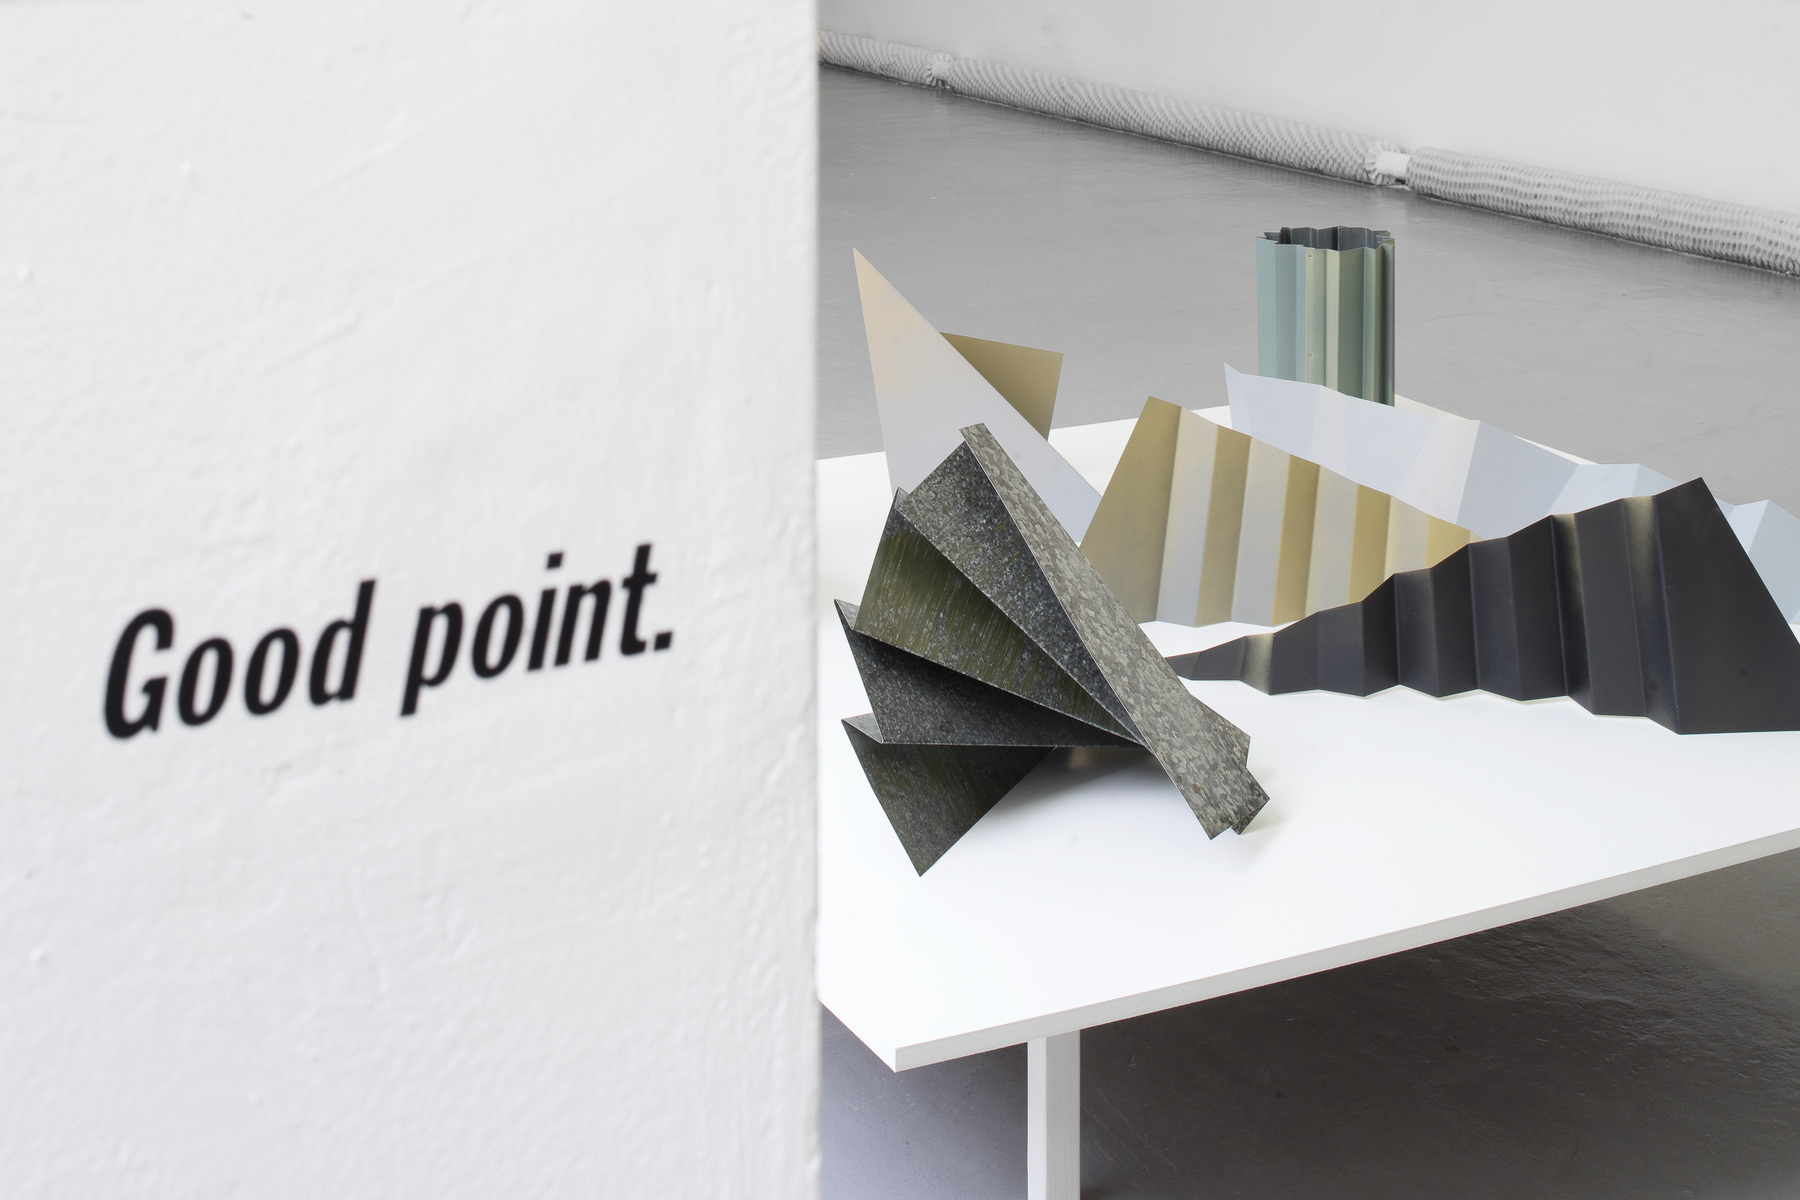 Positive Buzz as installed in the group show 'The Ripple Effect, Prague, 2018, curated by Fatos Utsek